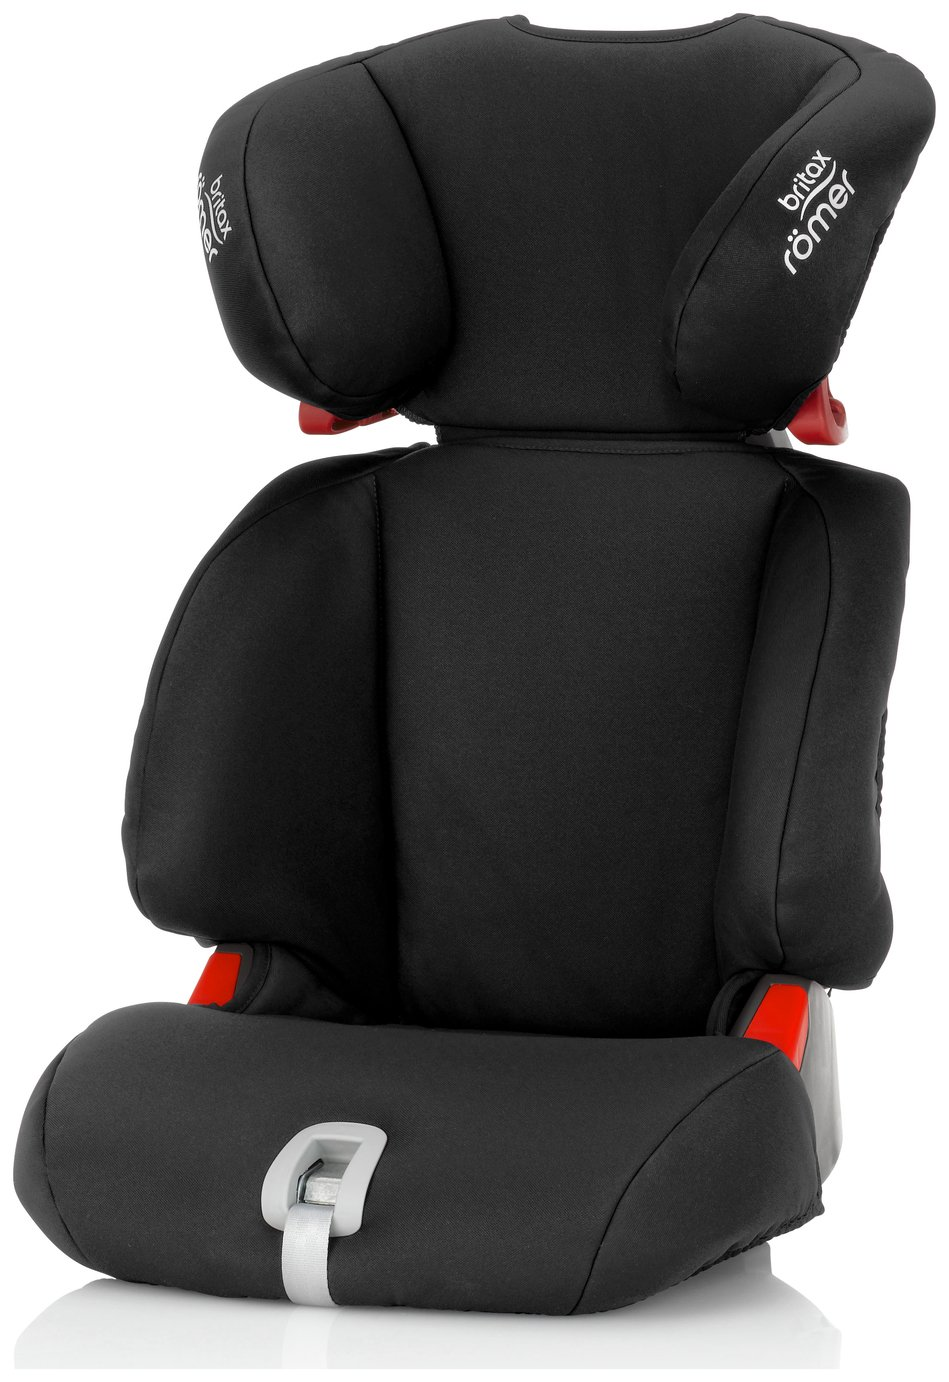 Image of Britax Romer DISCOVERY SL Group 2-3 Car Seat - Cosmos Black